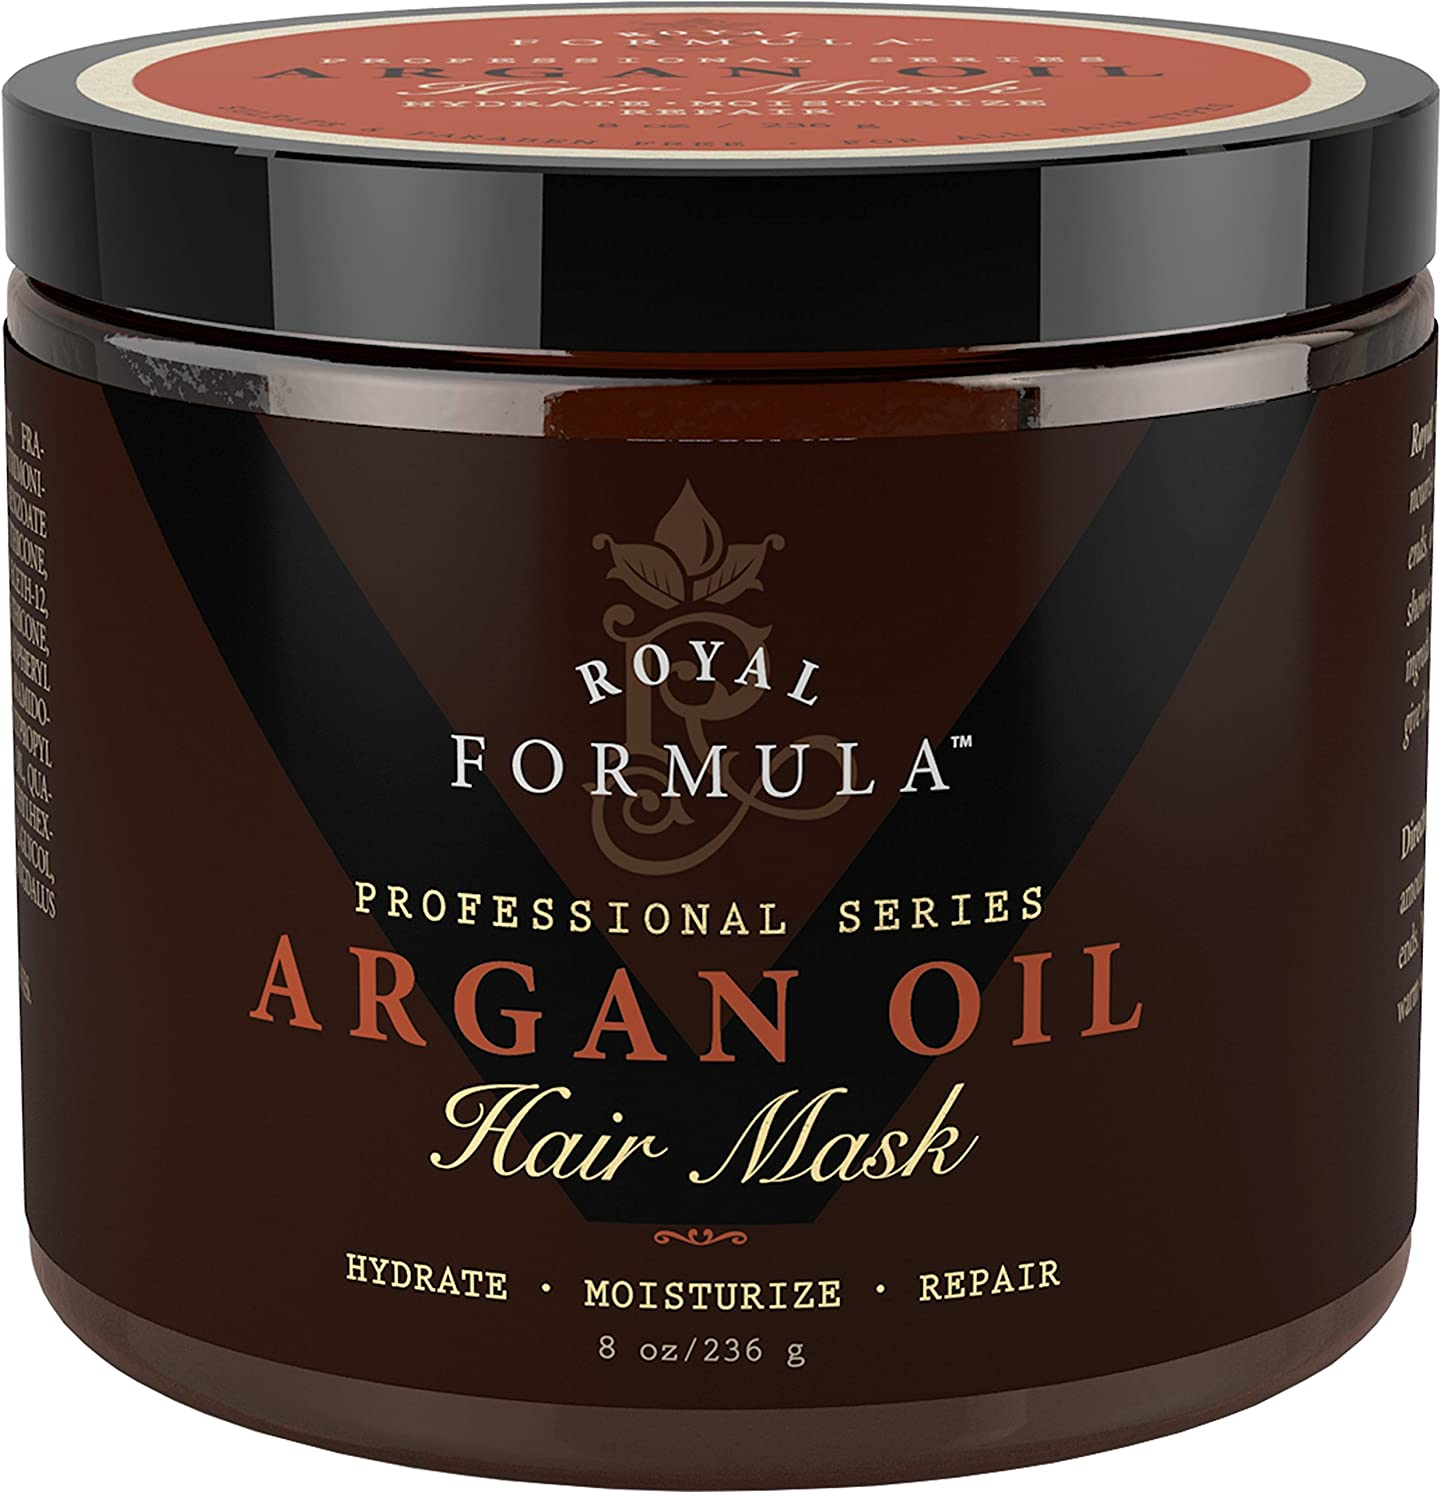 排除する重要性属するArgan Oil Hair Mask, 100% ORGANIC Argan & Almond Oils - Deep Conditioner, Hydrating Hair Treatment Therapy, Repair Dry Damaged, Color Treated & Bleached Hair - Hydrates & Stimulates Hair Growth, 8 Oz